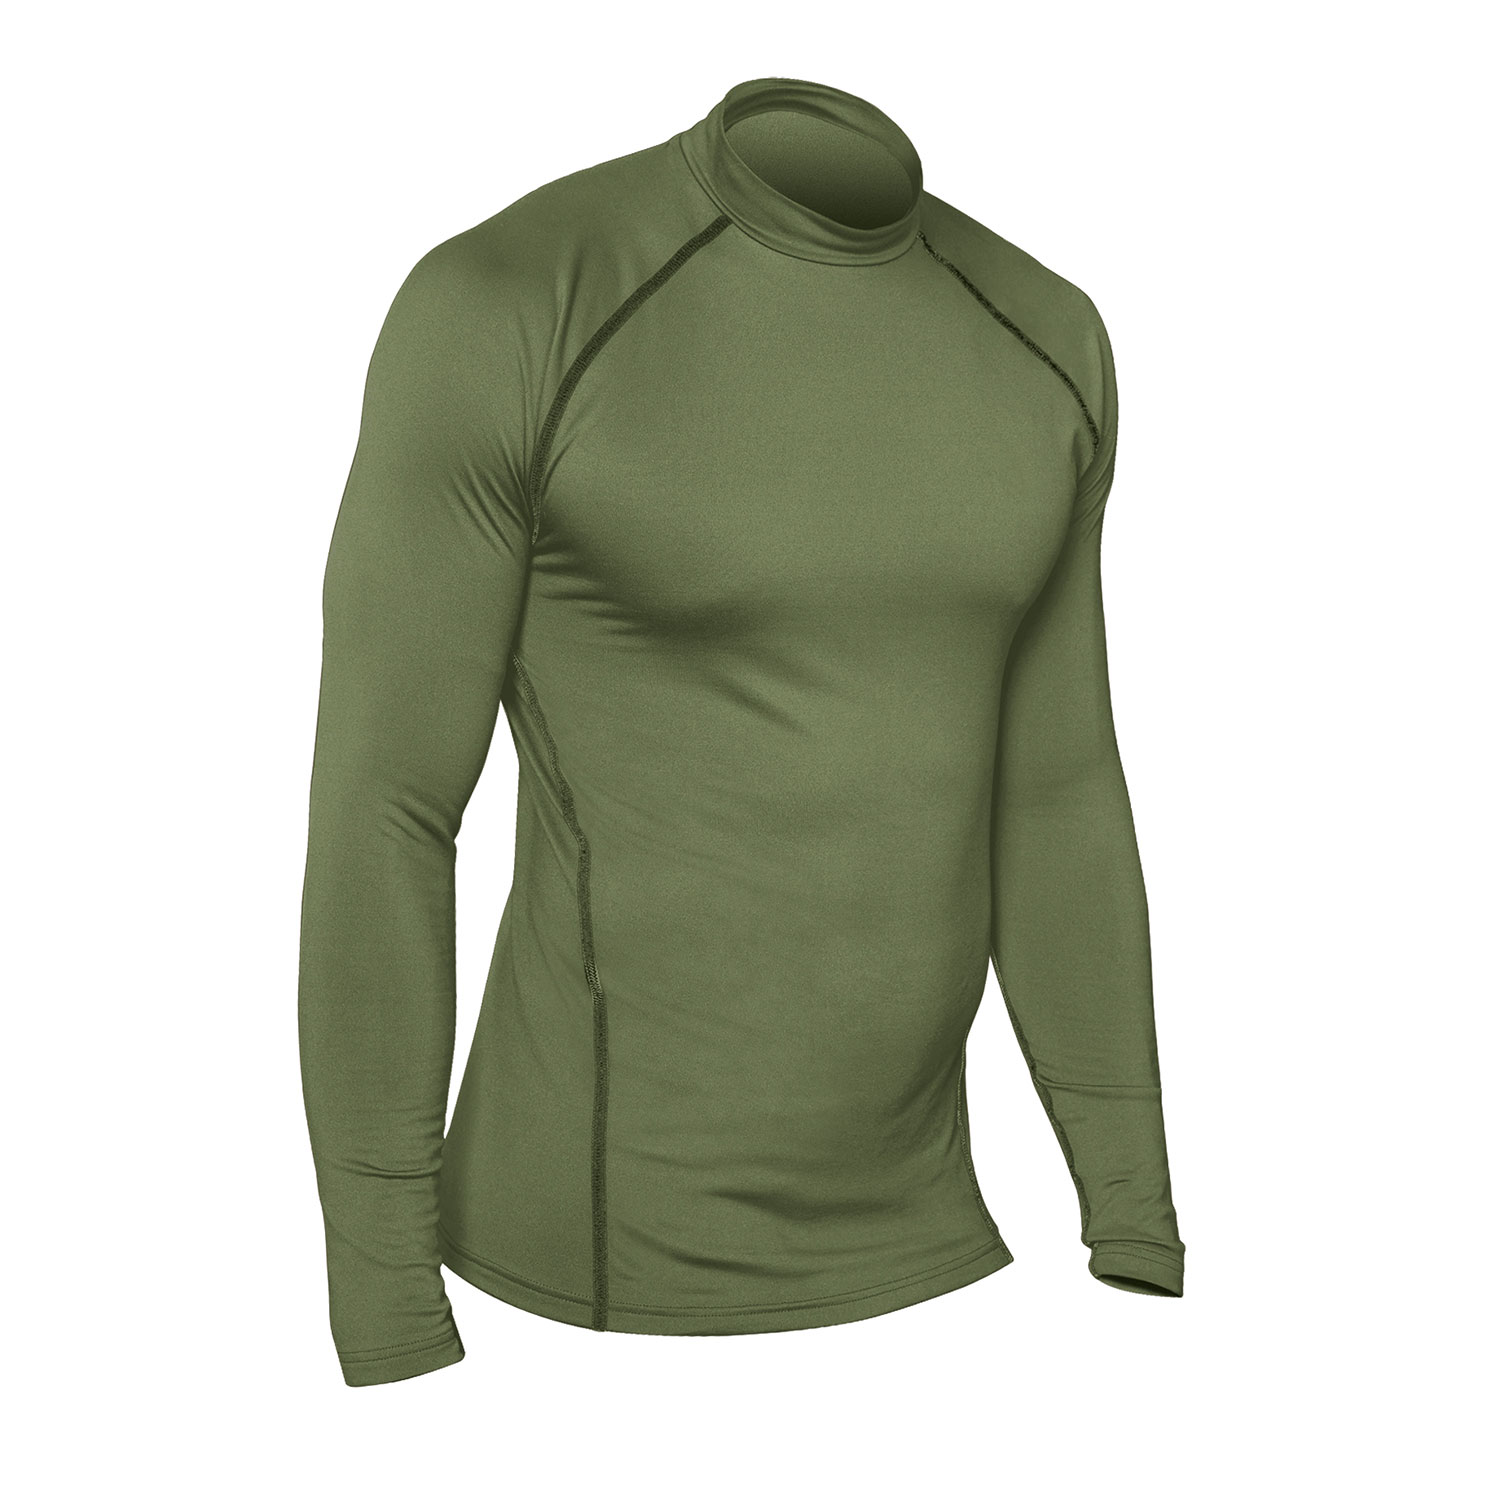 573082236 Champion Tactical Competitor Double Dry Long Sleeve Mock Tee